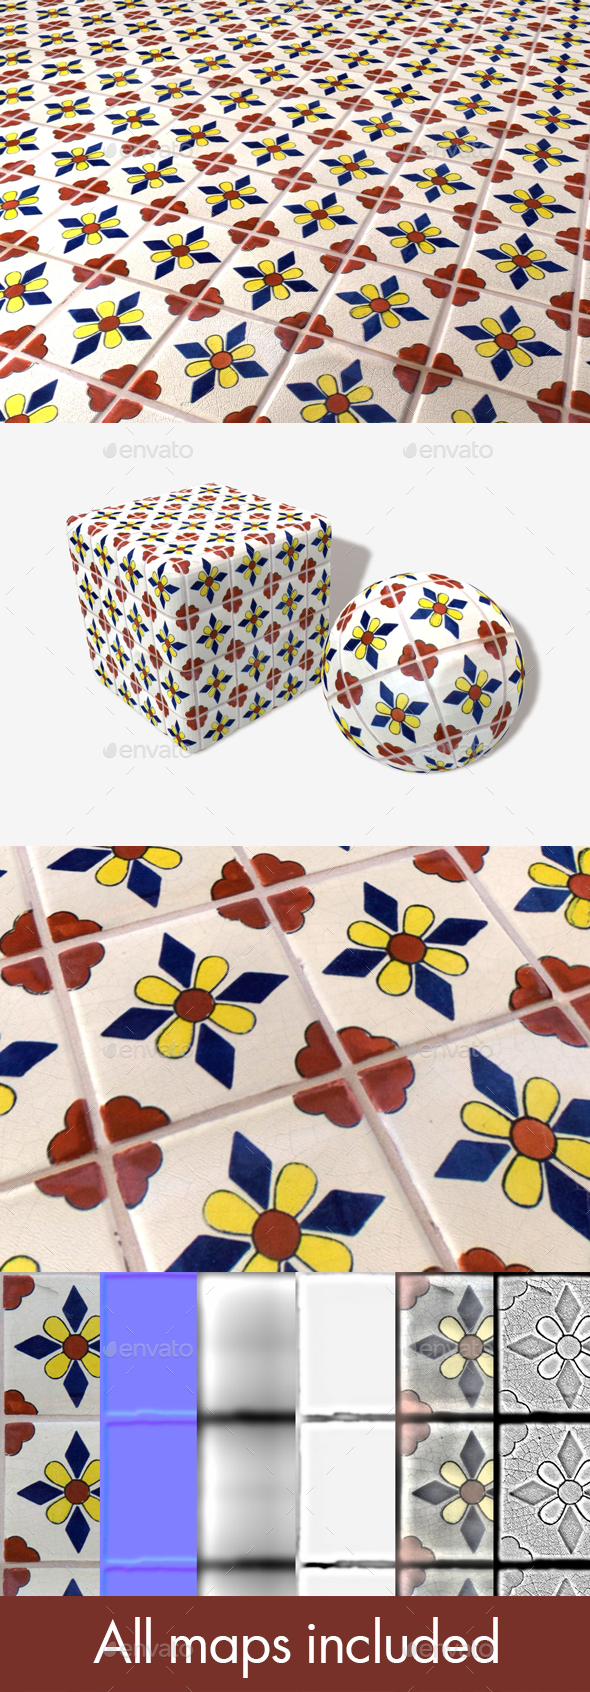 Hand Painted Tiles Seamless Texture - 3DOcean Item for Sale